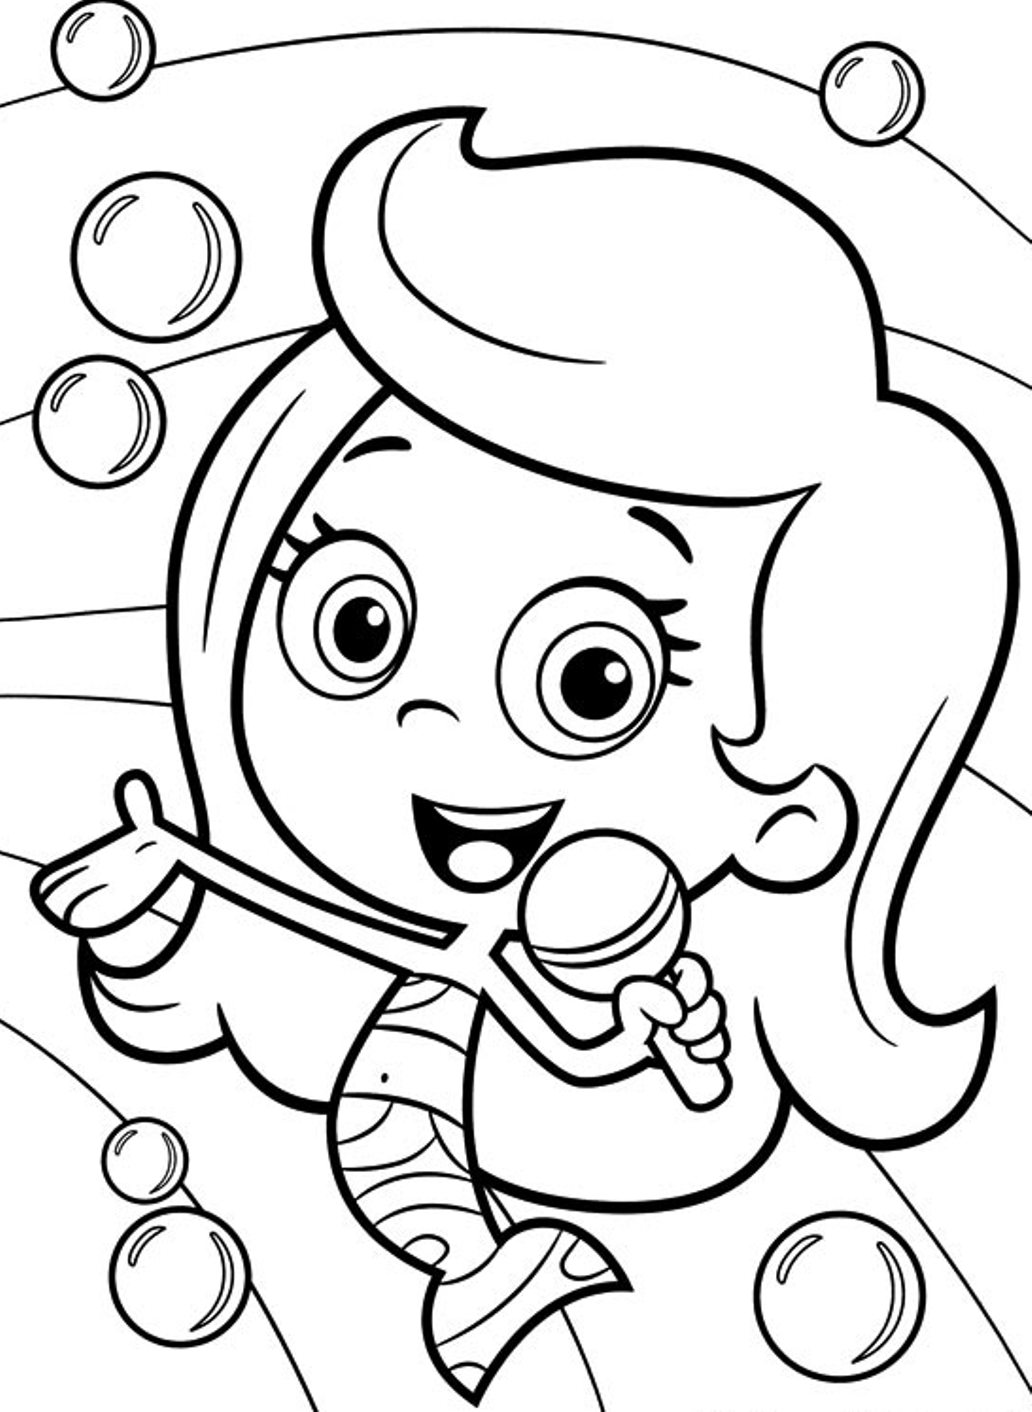 bubble guppies coloring page bubble guppies coloring pages coloring pages coloring bubble page guppies